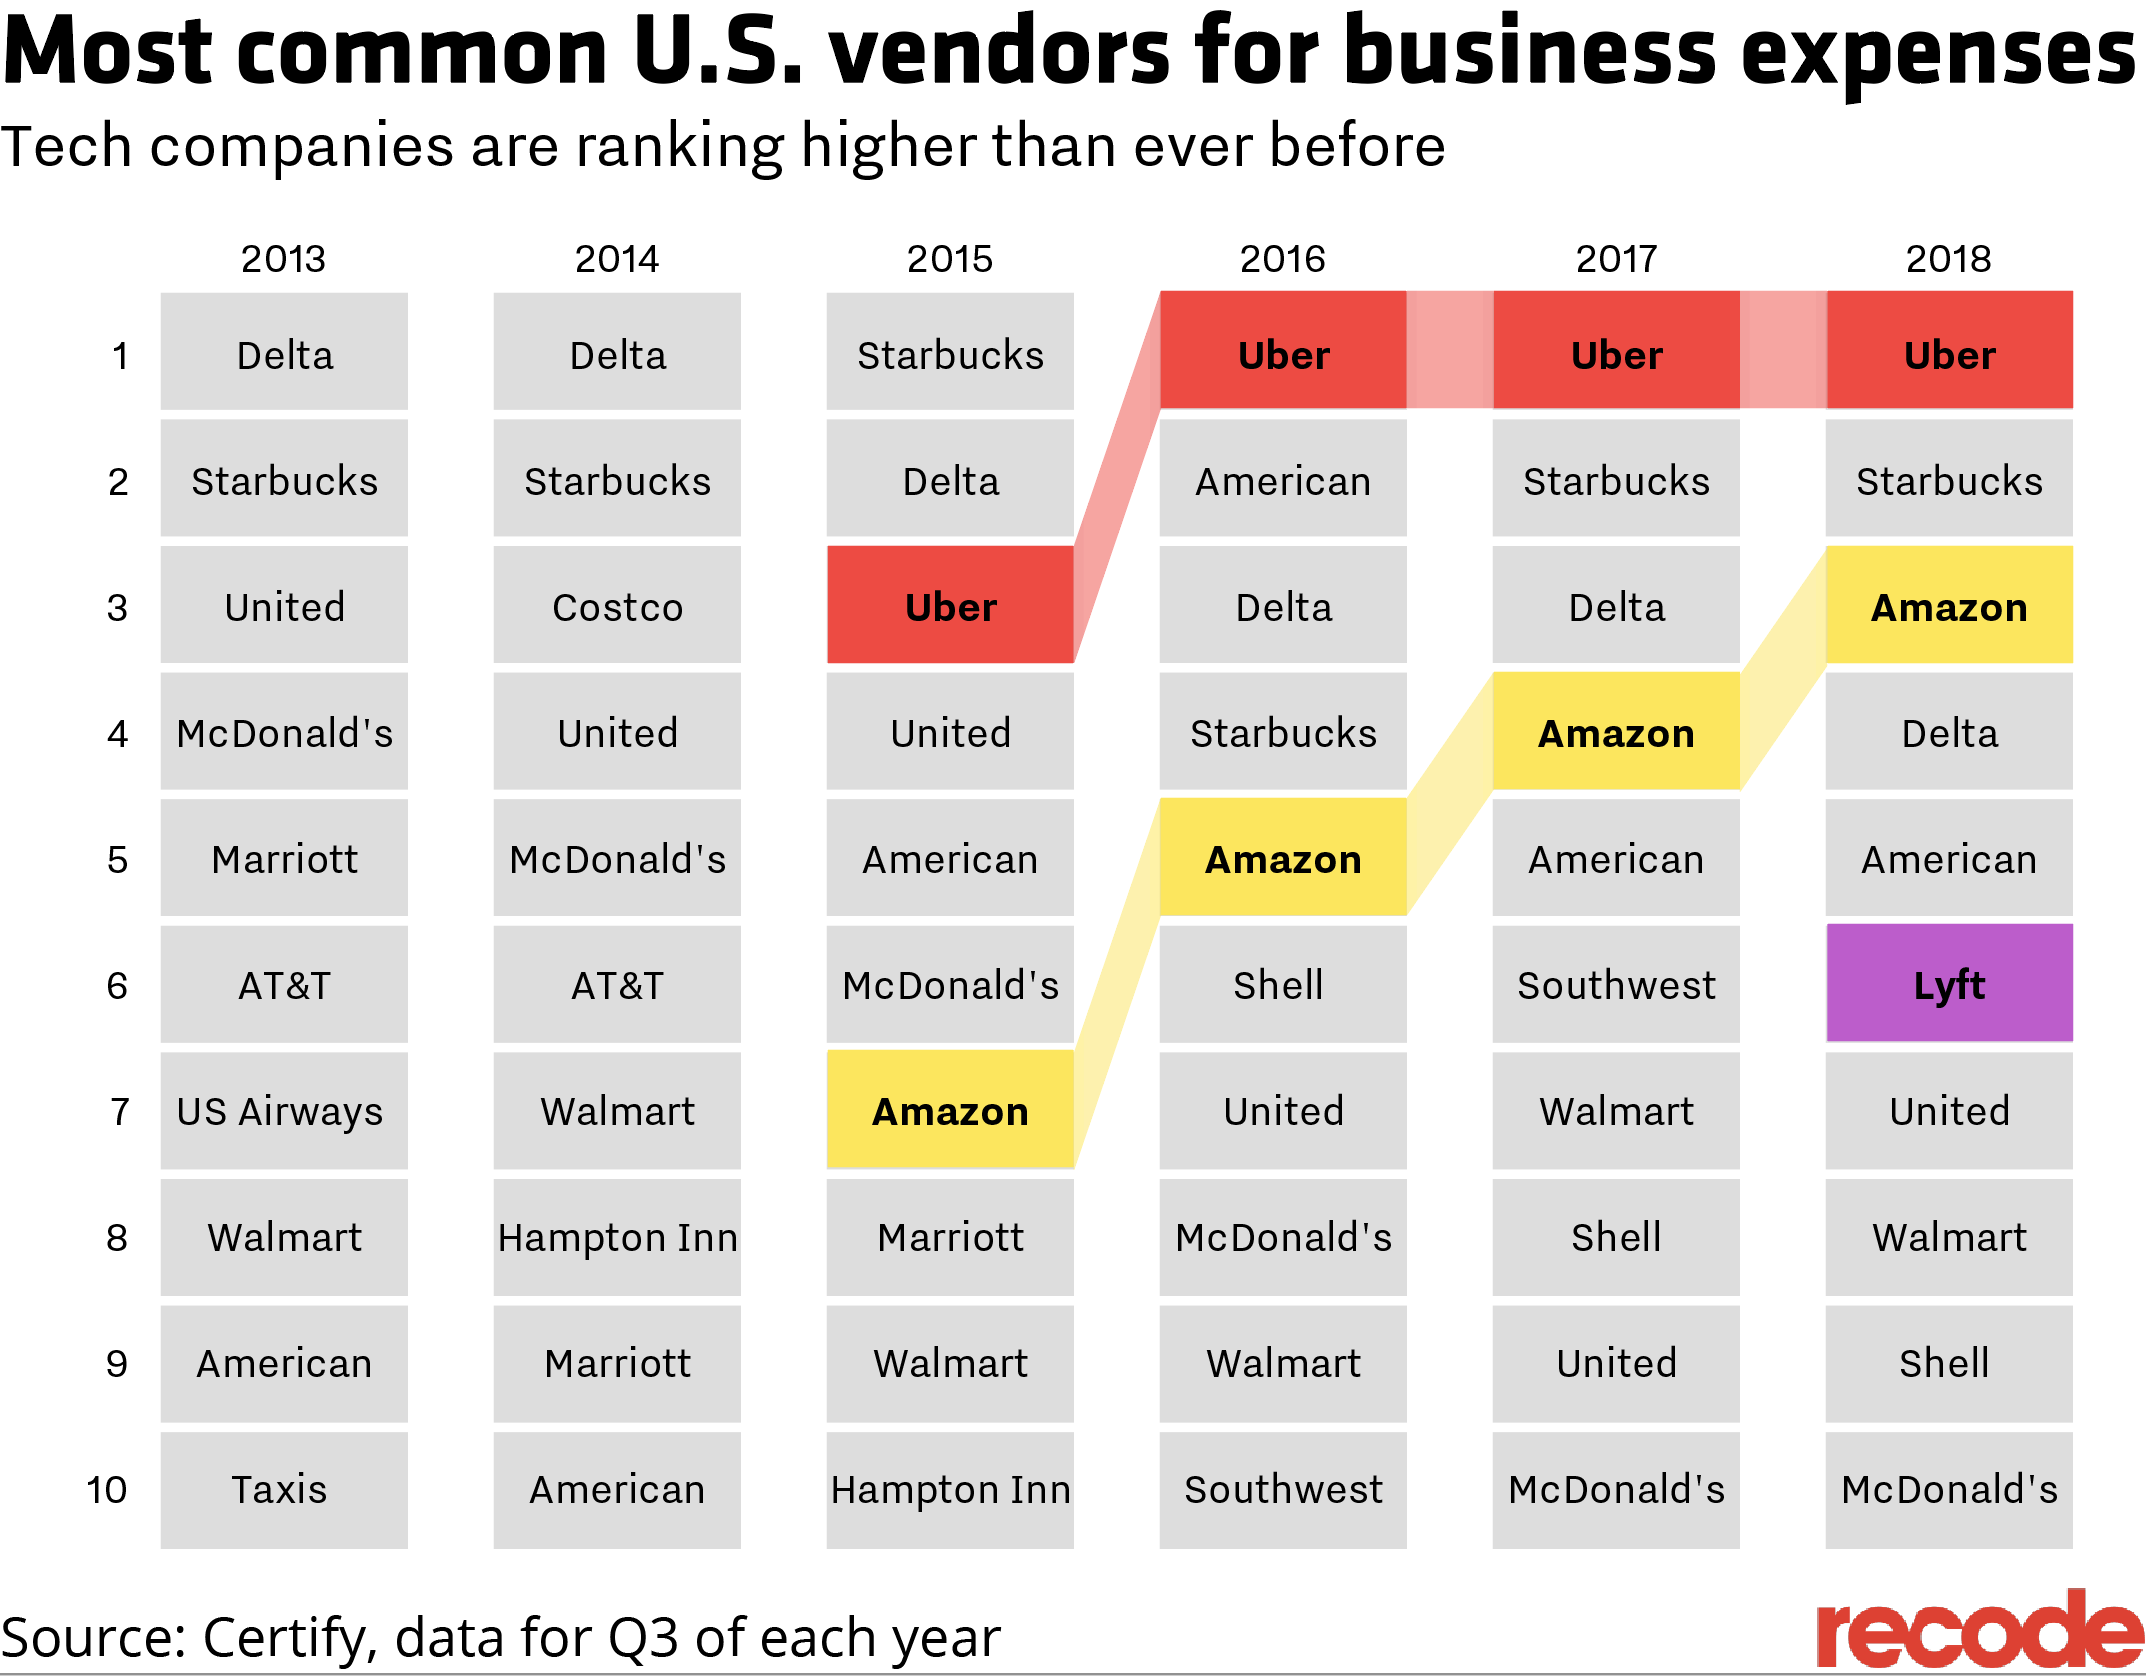 Most commonly expensed U.S. vendors by year, Certify data